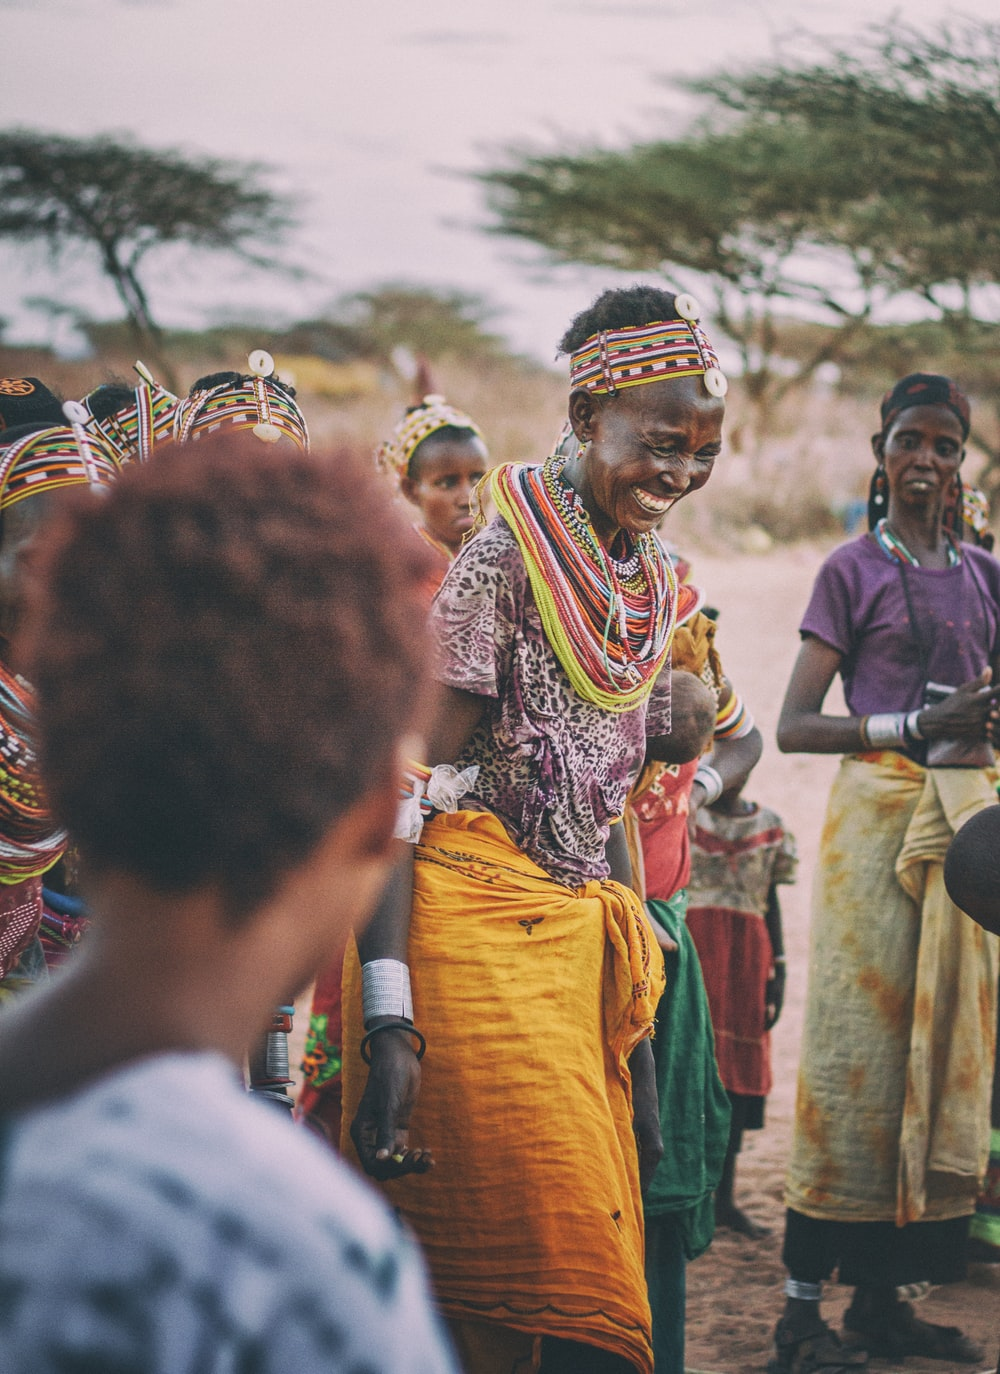 smiling woman dancing around people in tribe during daytime